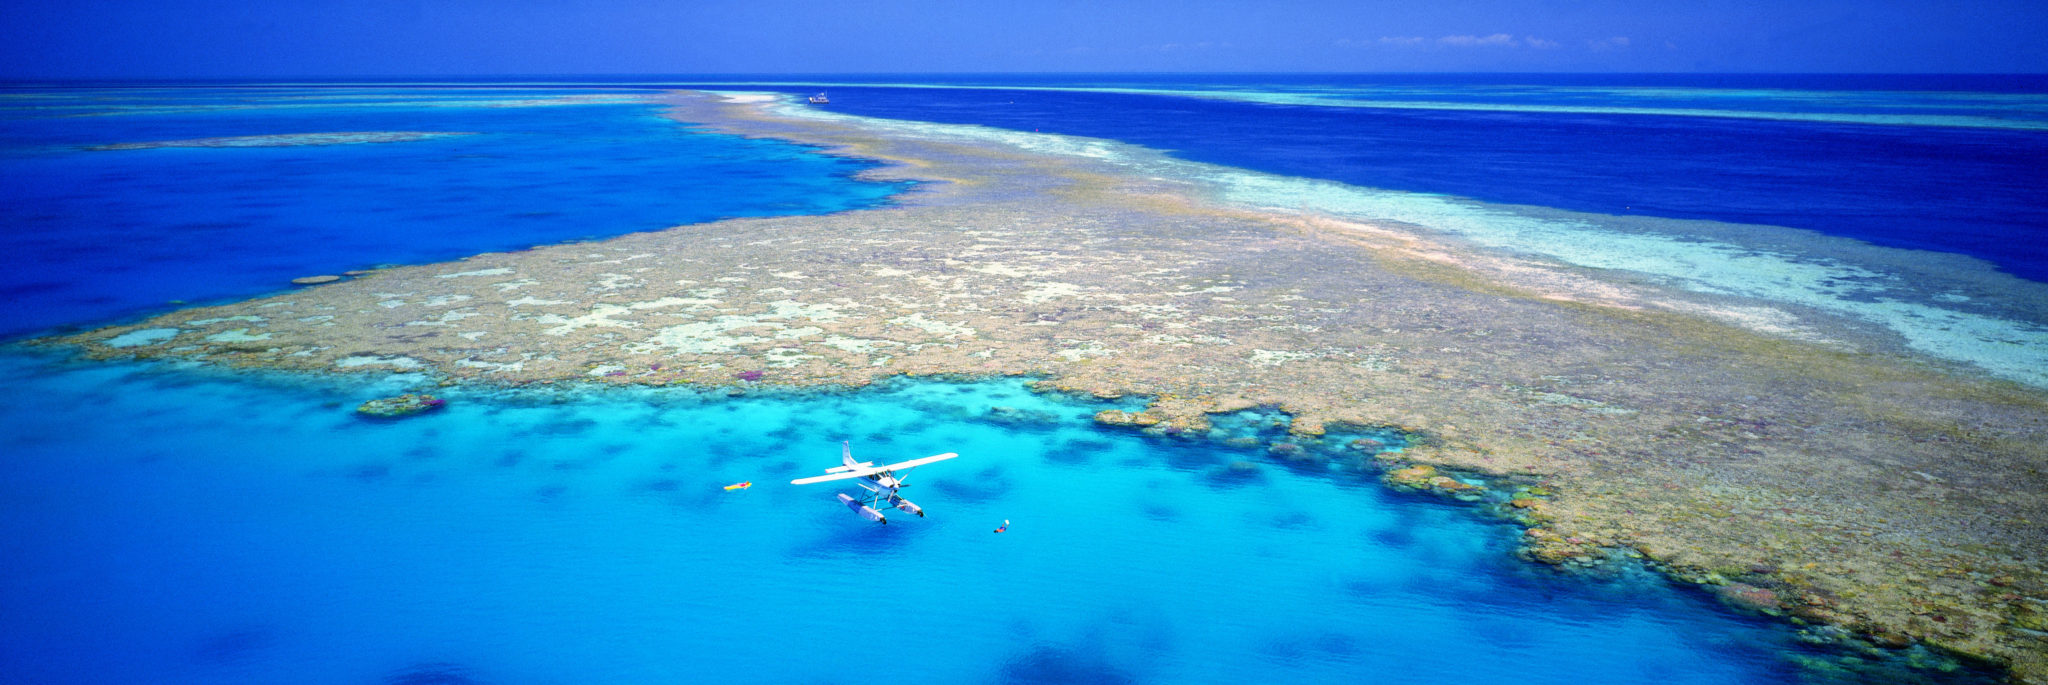 Aerial View of Hardy Reef Great Barrier Reef